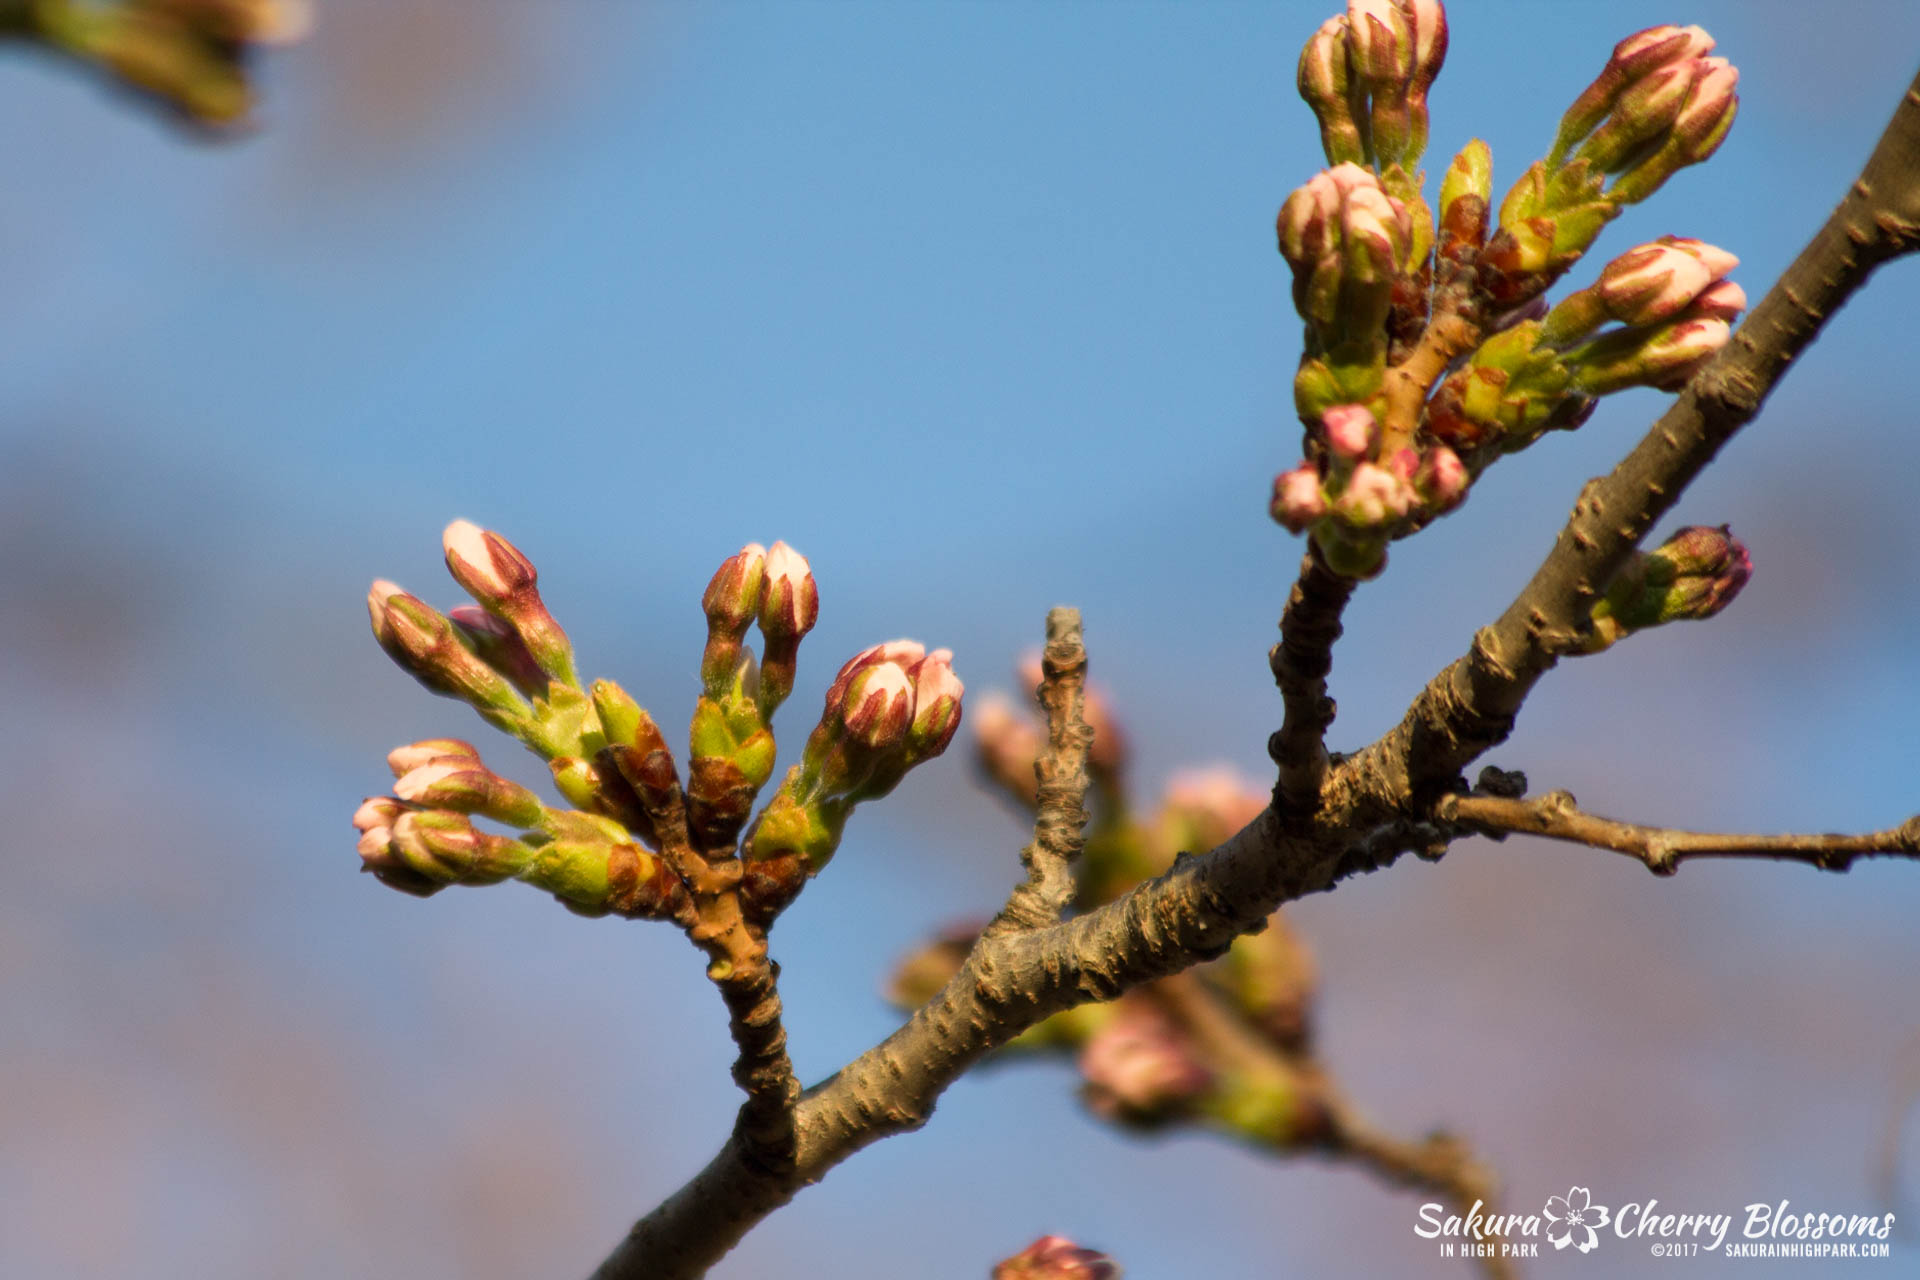 Sakura-in-High-Park-April-17-2017-florets-are-emerging-from-the-buds-throughout-the-park-83.jpg